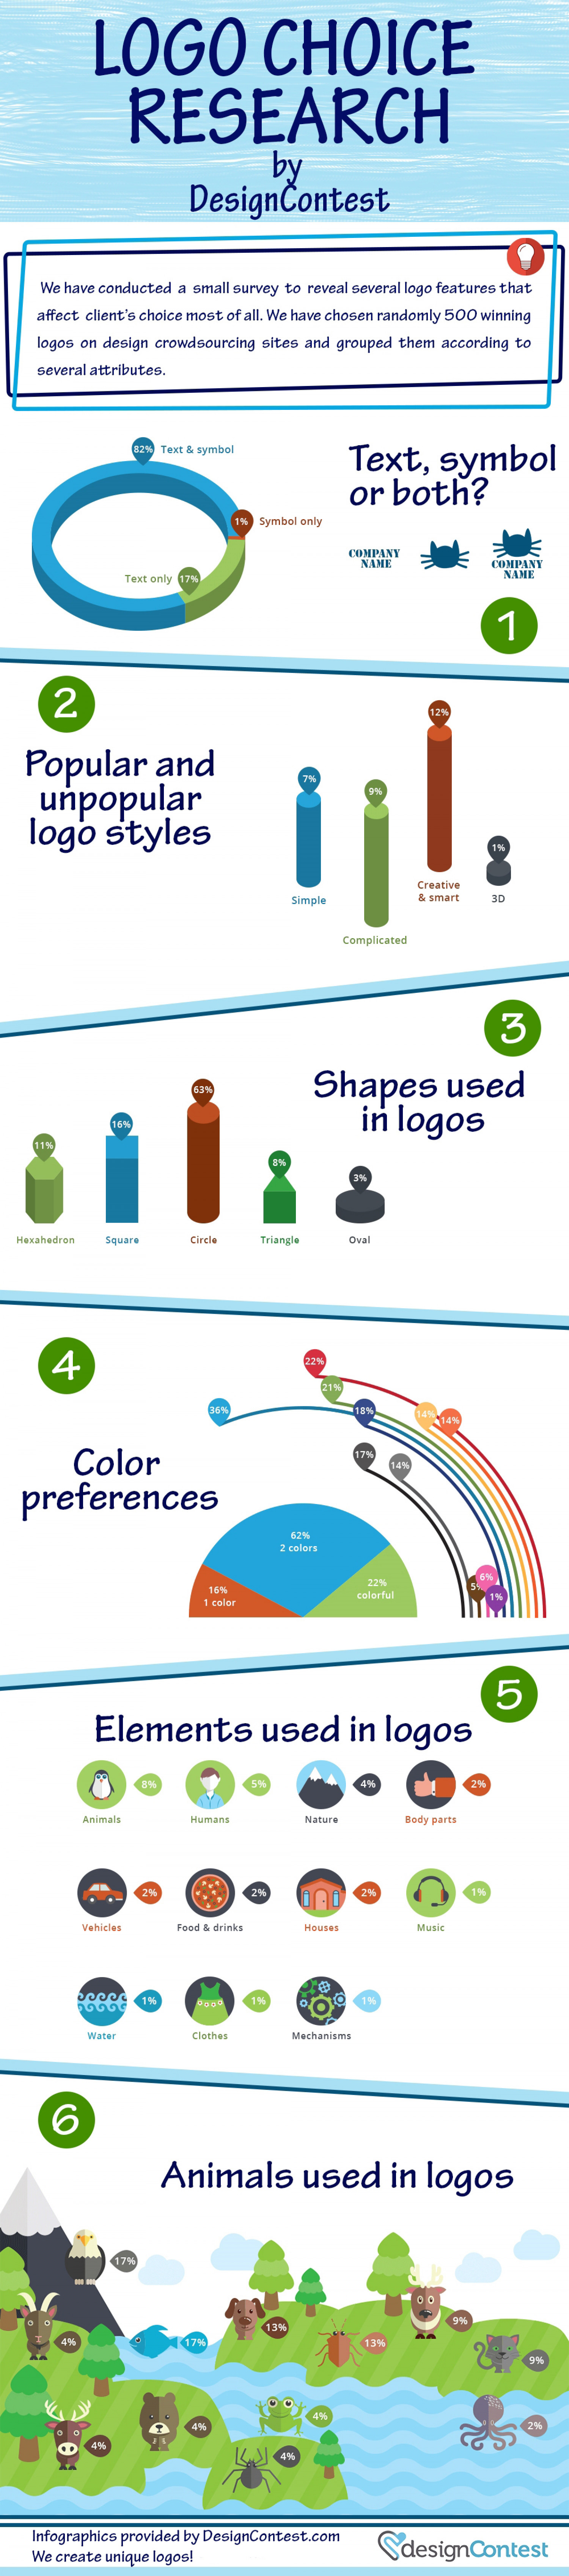 What Kind of Logo Does Client Prefer? Infographic